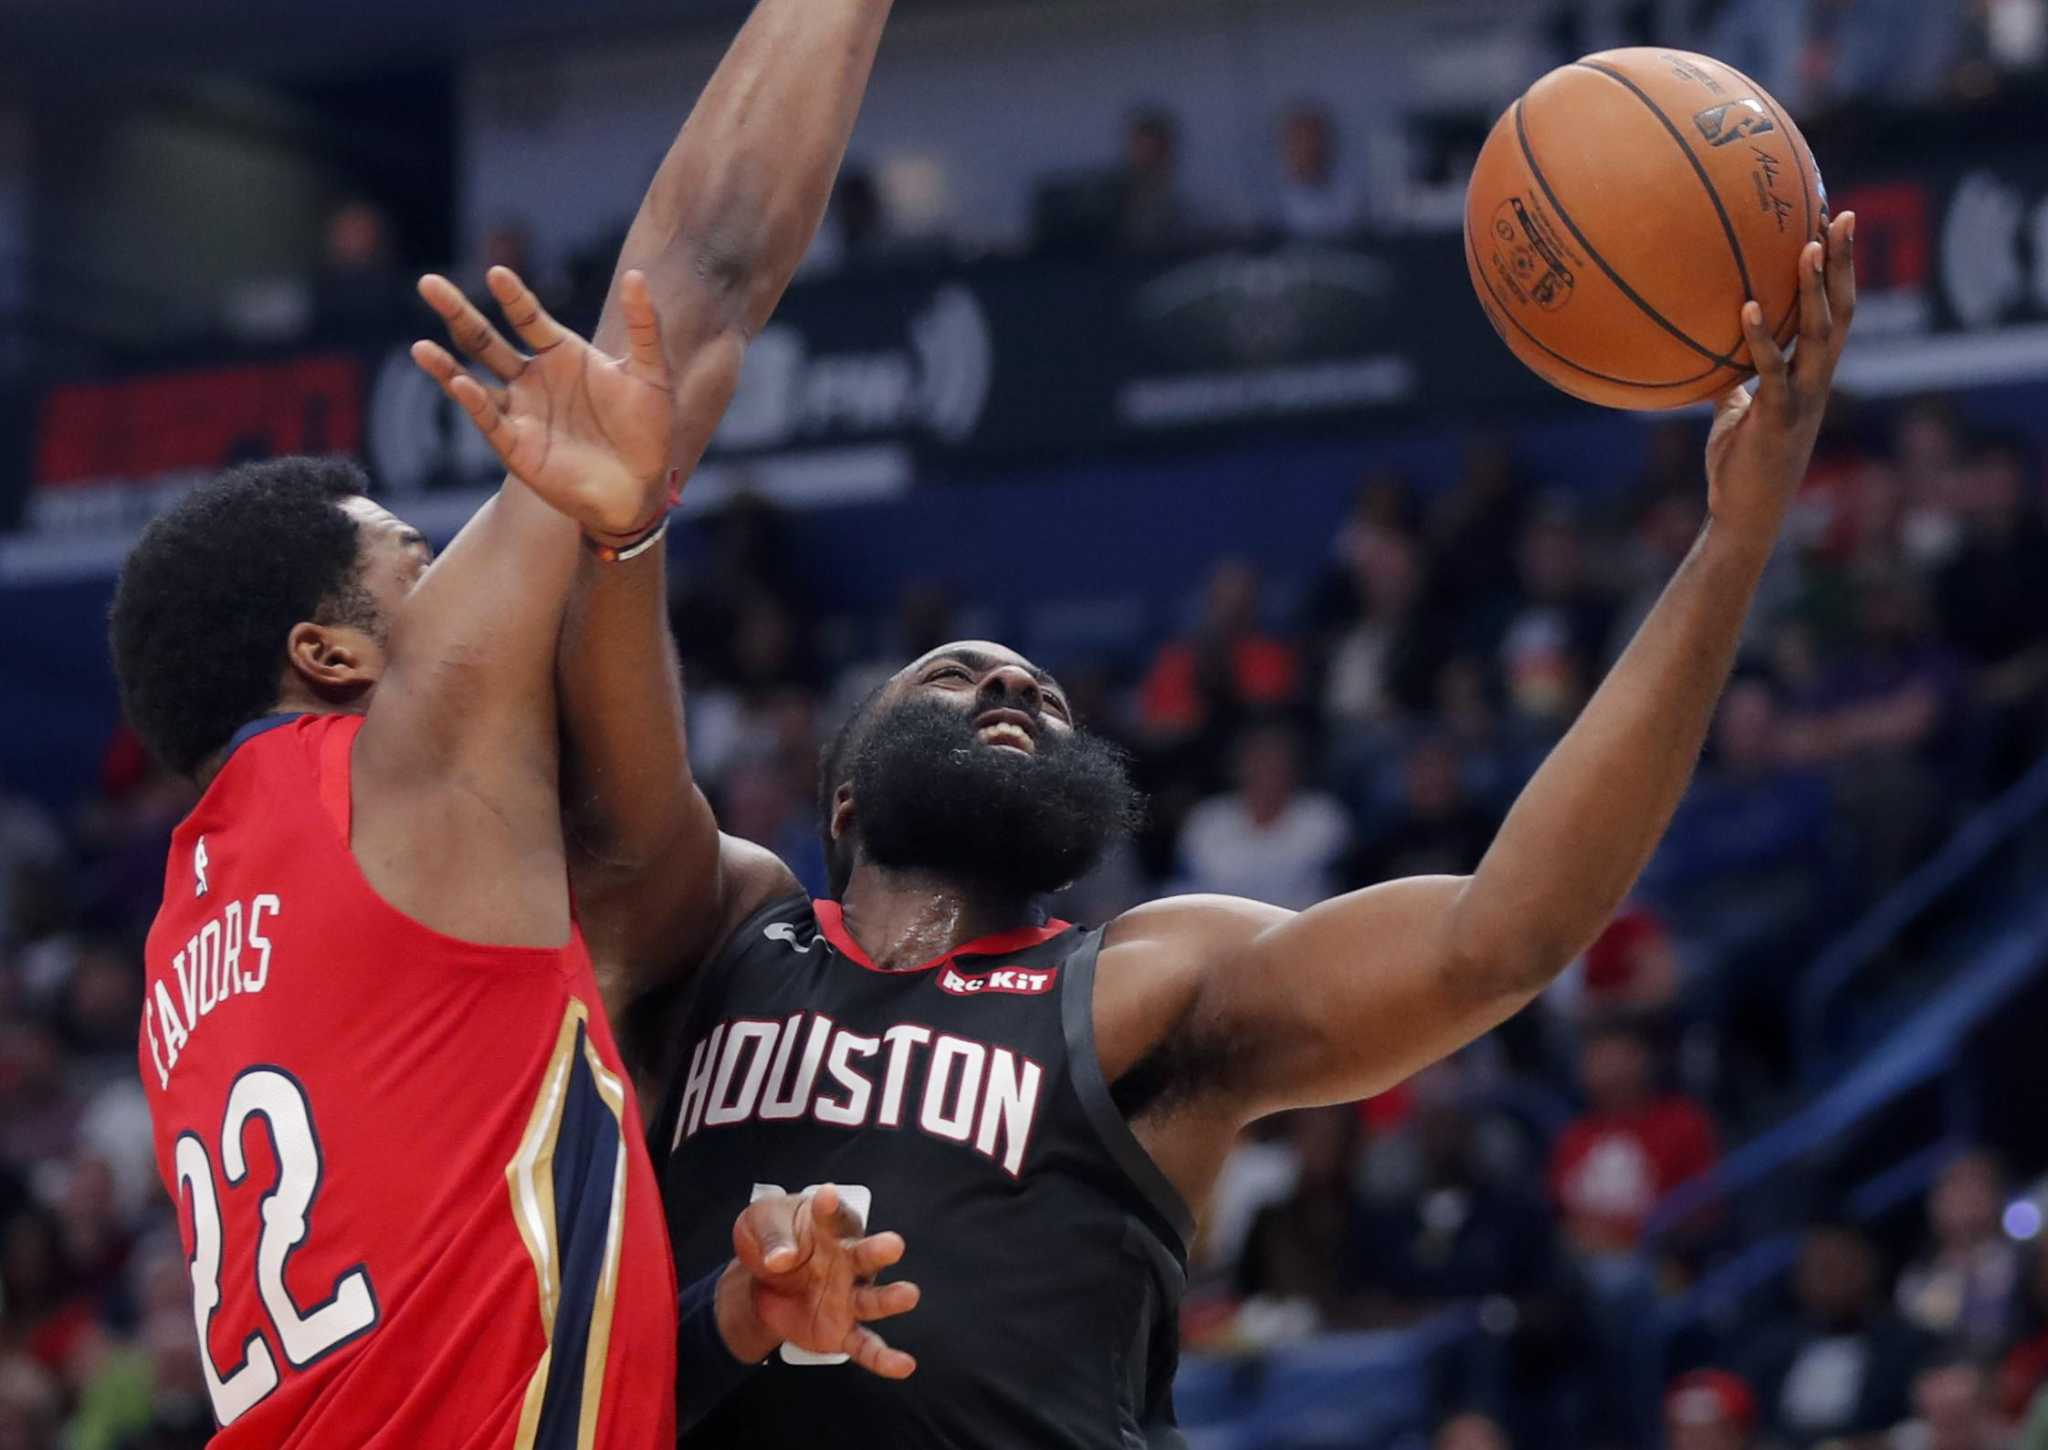 James Harden takes over to push Rockets past Pelicans